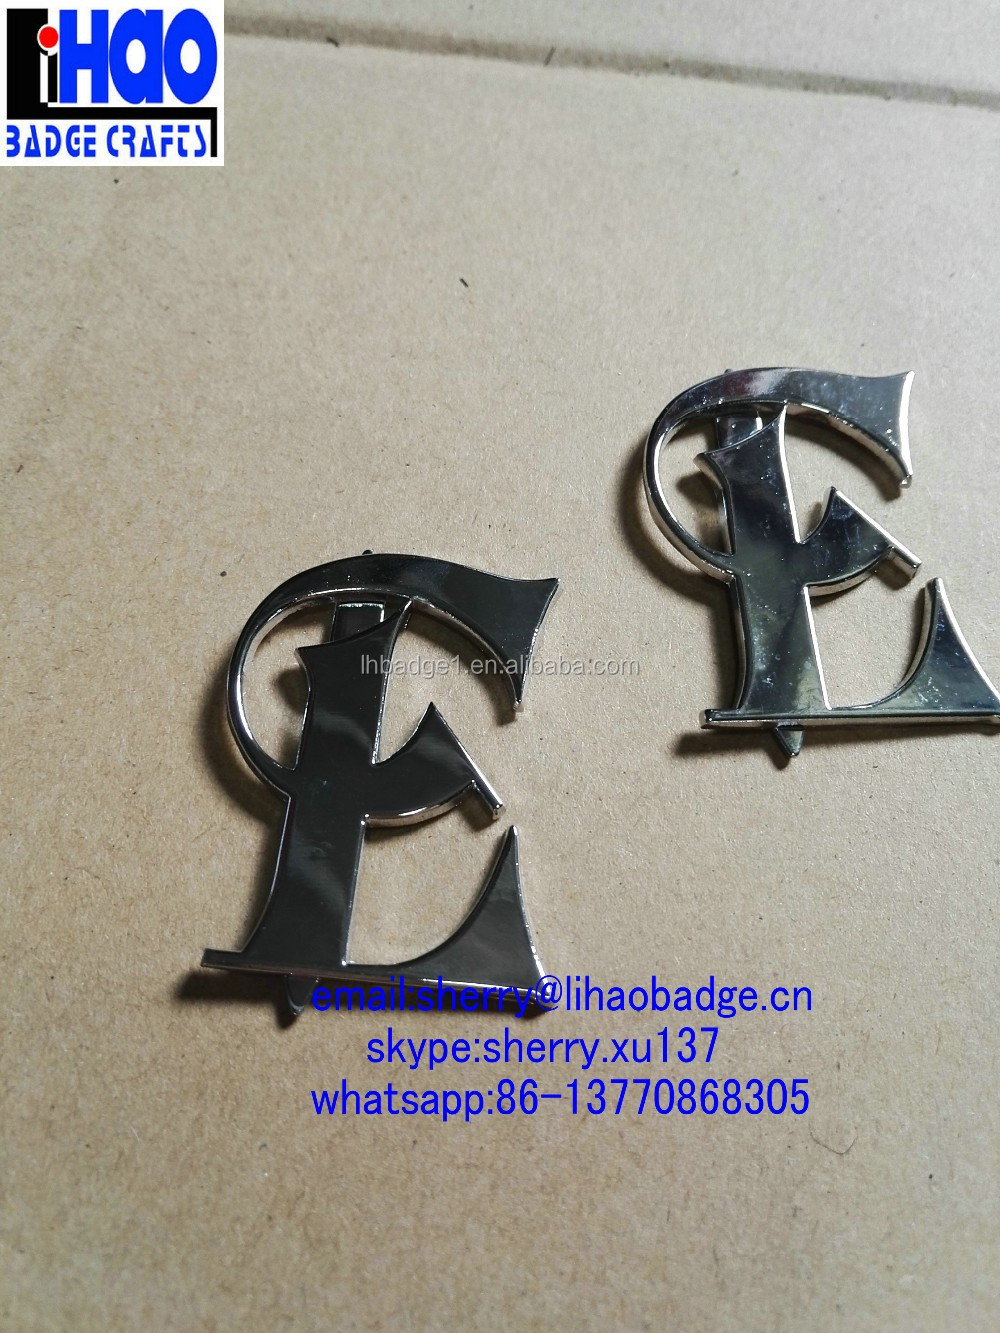 small metal alphabet E letter logo pin plate label for jackets and hats